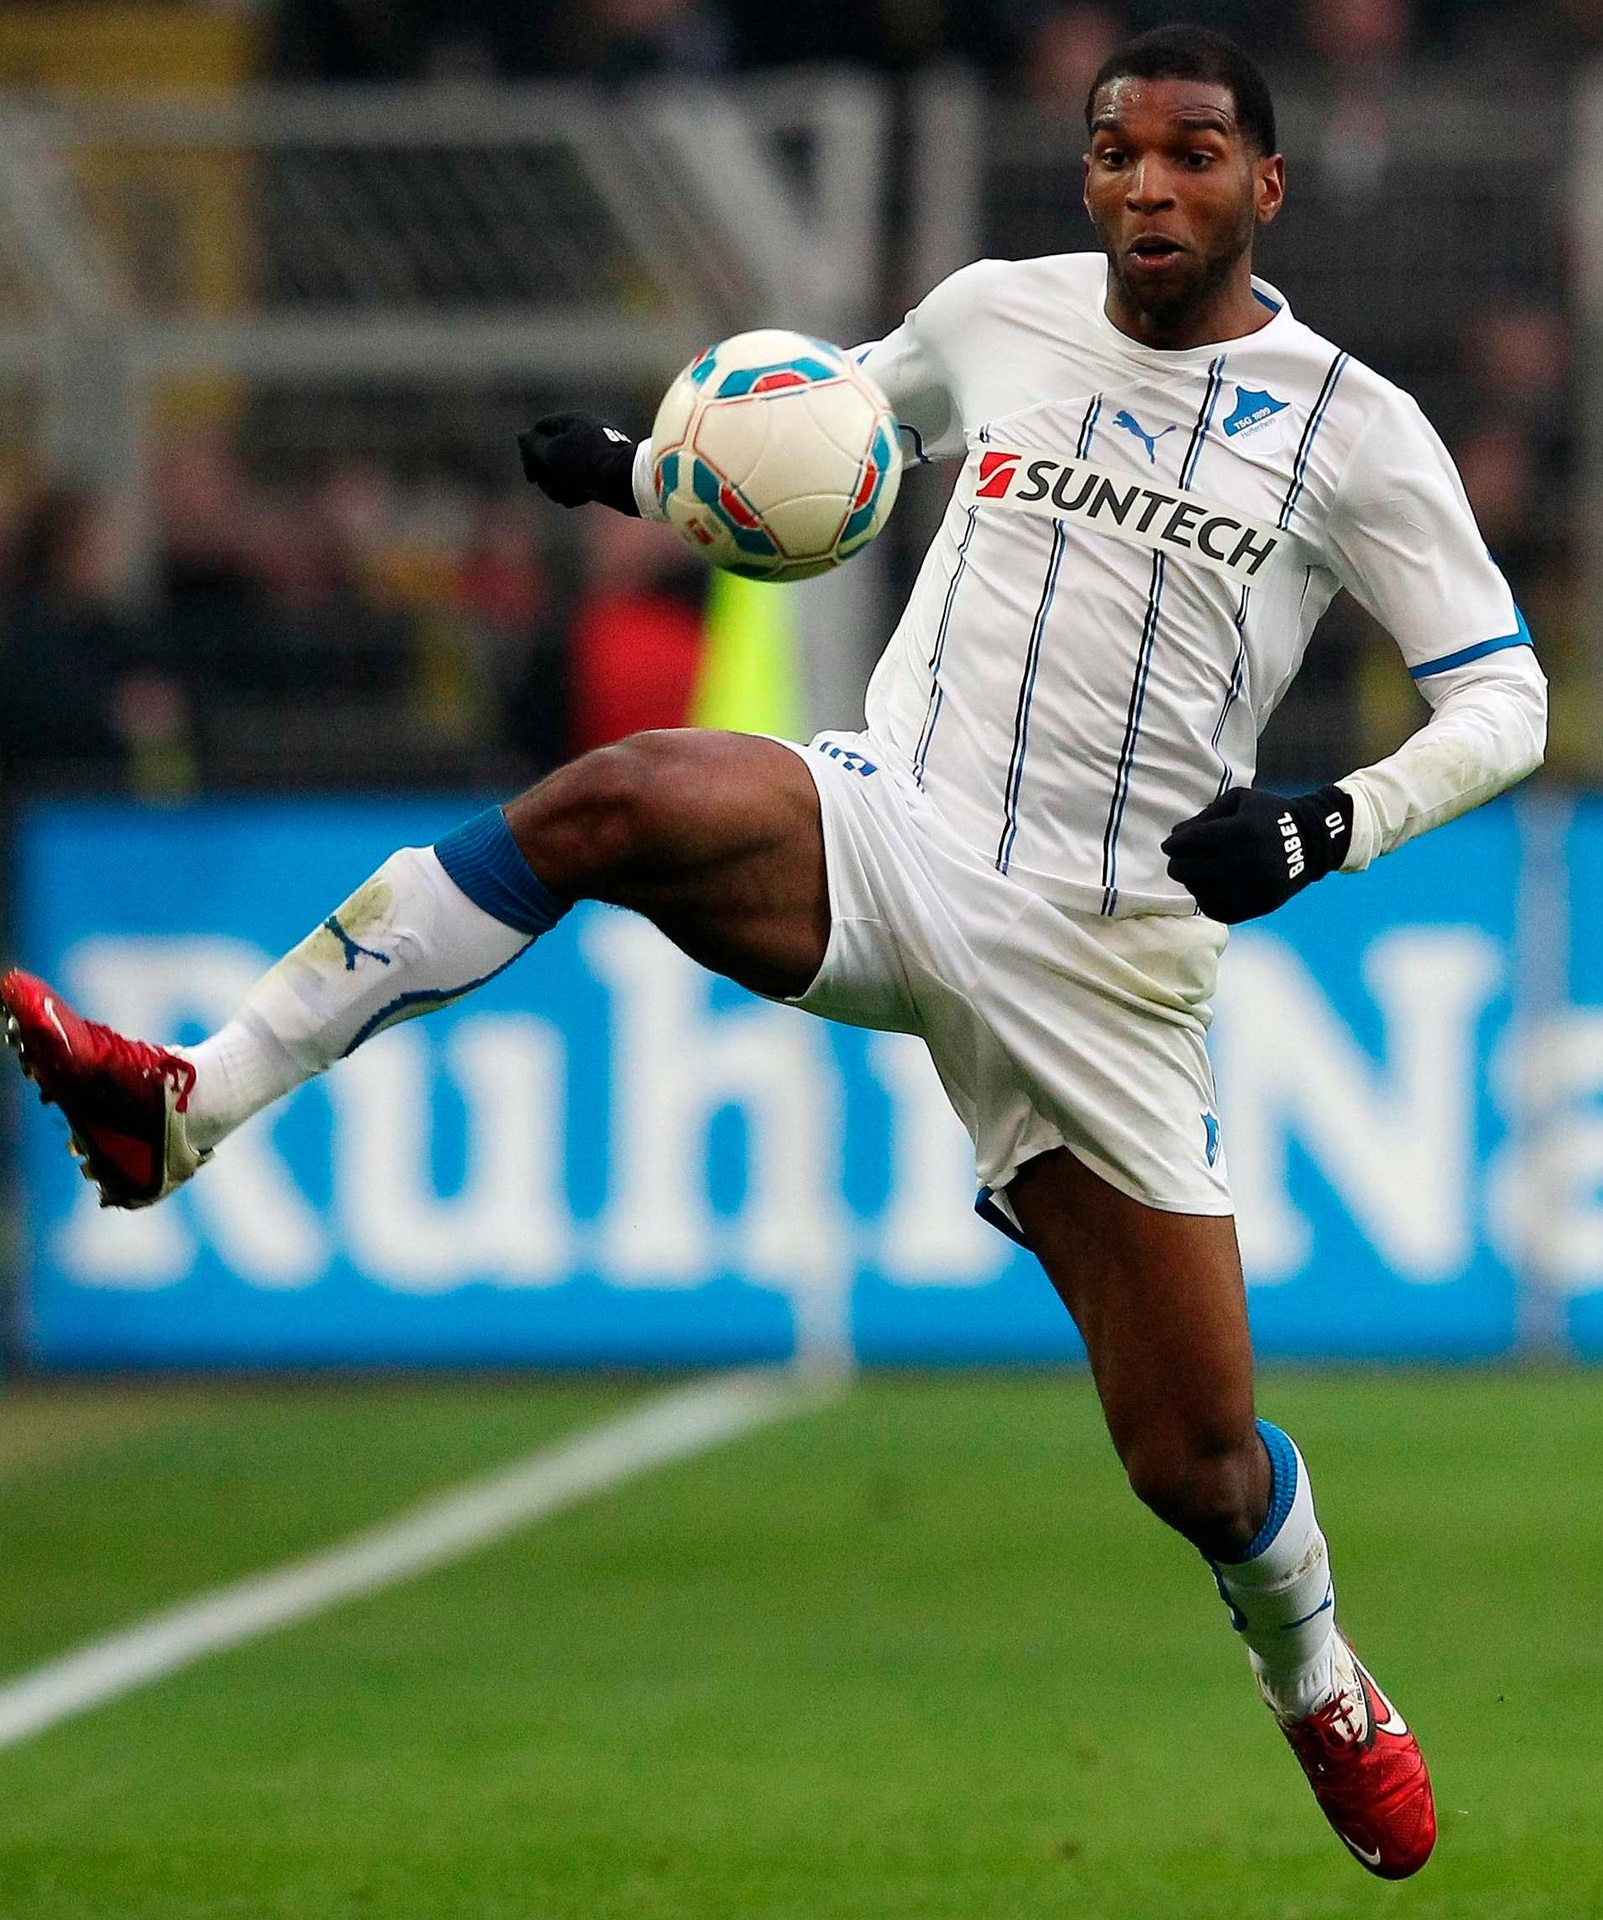 Hoffenheim-11-12-PUMA-away-kit-Ryan-Babel.jpg